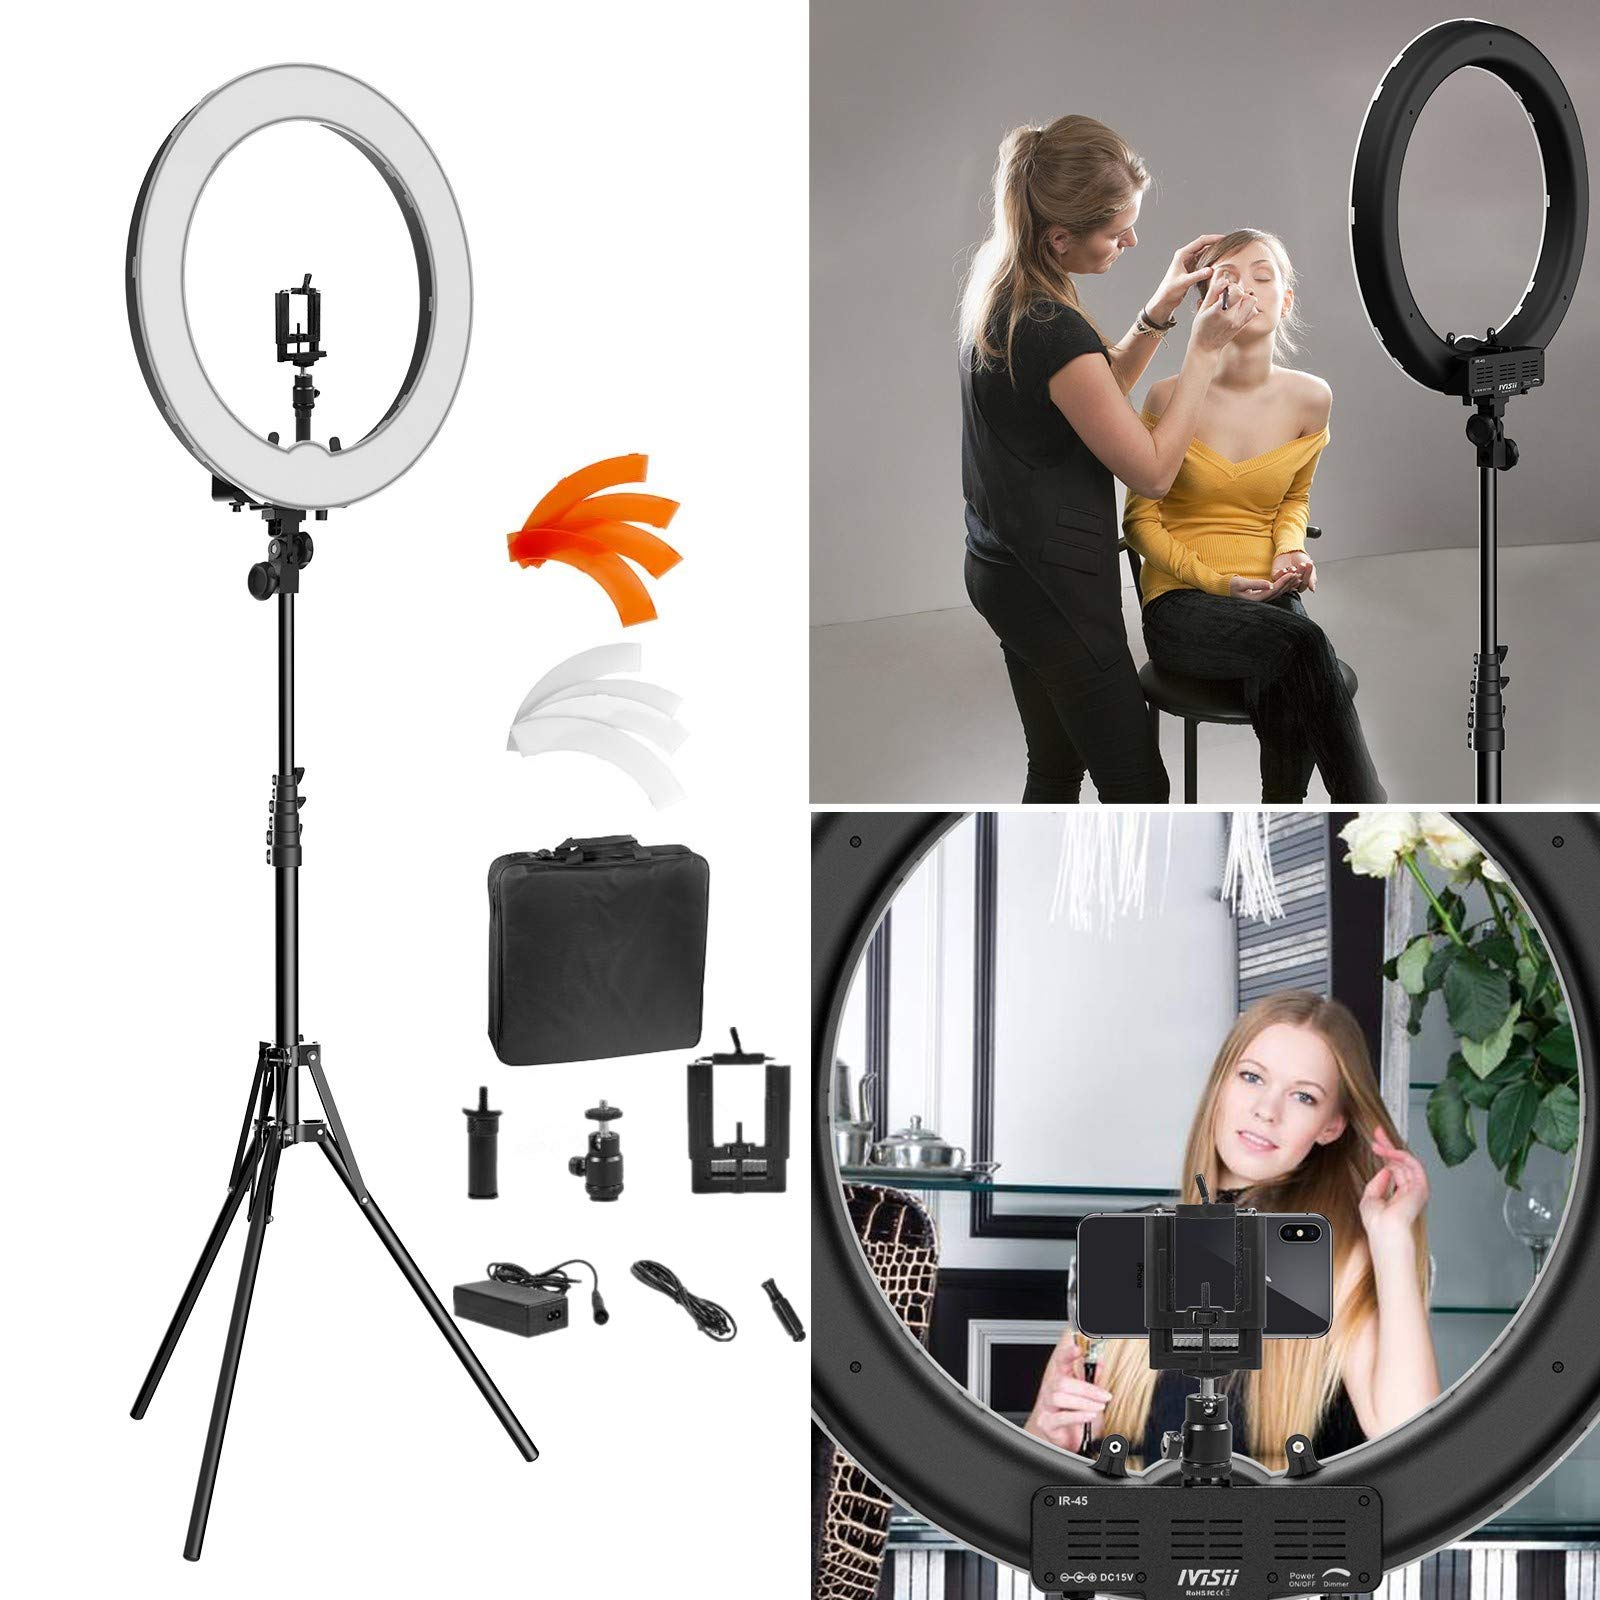 Ring Light Kit:18'' 48cm Outer 55W 5500K Dimmable LED Ring Light, Light Stand, Carrying Bag for Camera,Smartphone,YouTube,Self-Portrait Shooting by IVISII (Image #1)